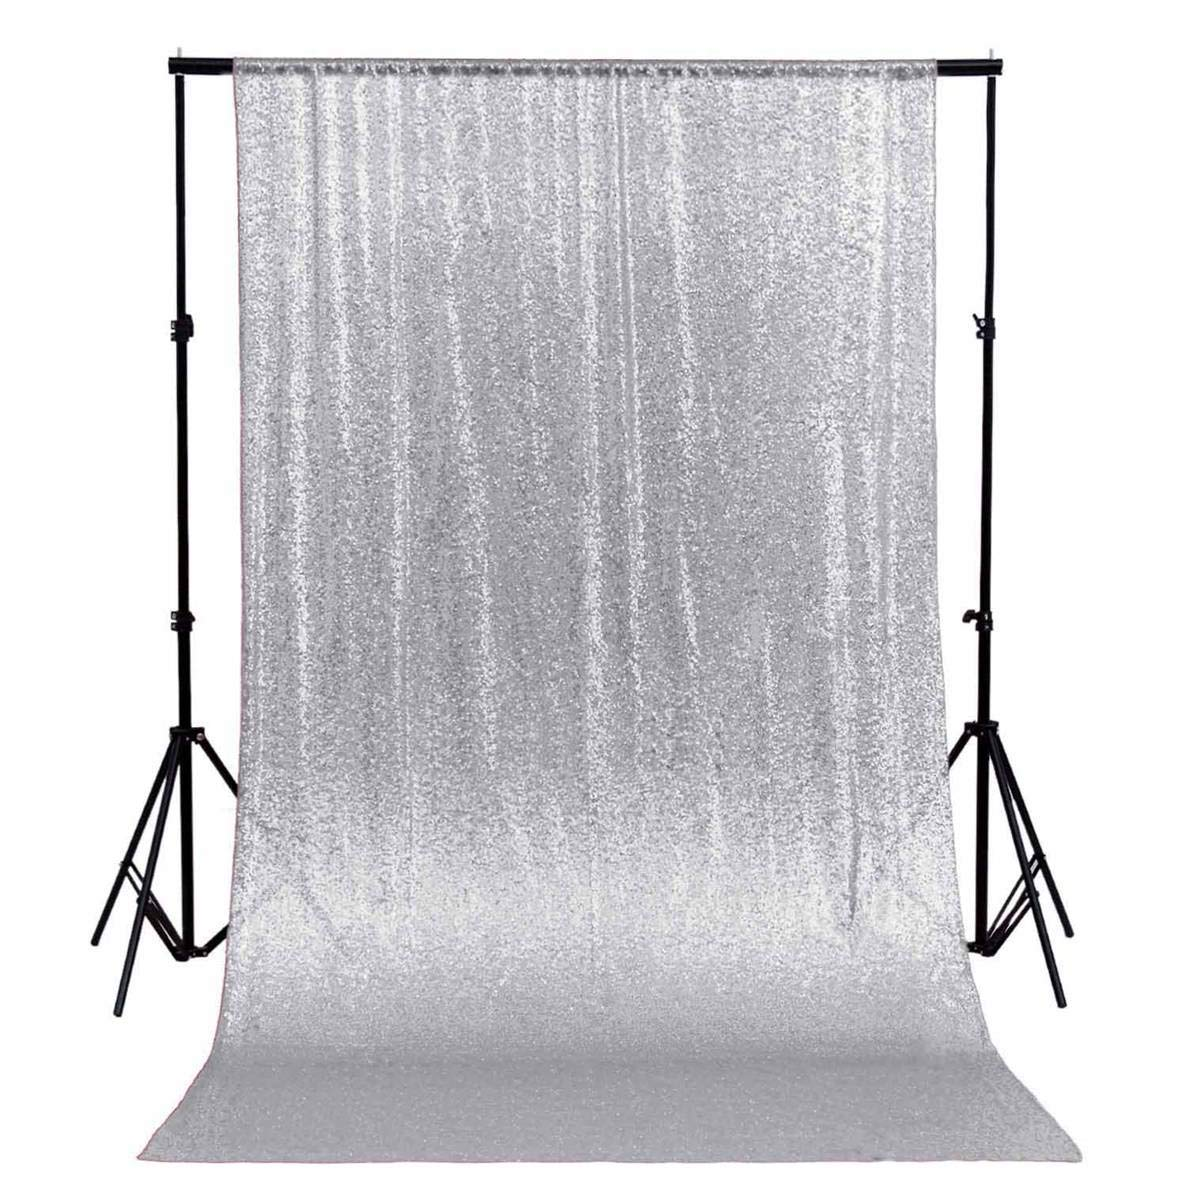 ShinyBeauty 8FTX8FT-Silver-Sequin Backdrop-Curtain, 96x96-Inch Premium Quality Glitz Booth Photograhy Backdrop for Christmas/Wedding Decor (Silver) by ShinyBeauty